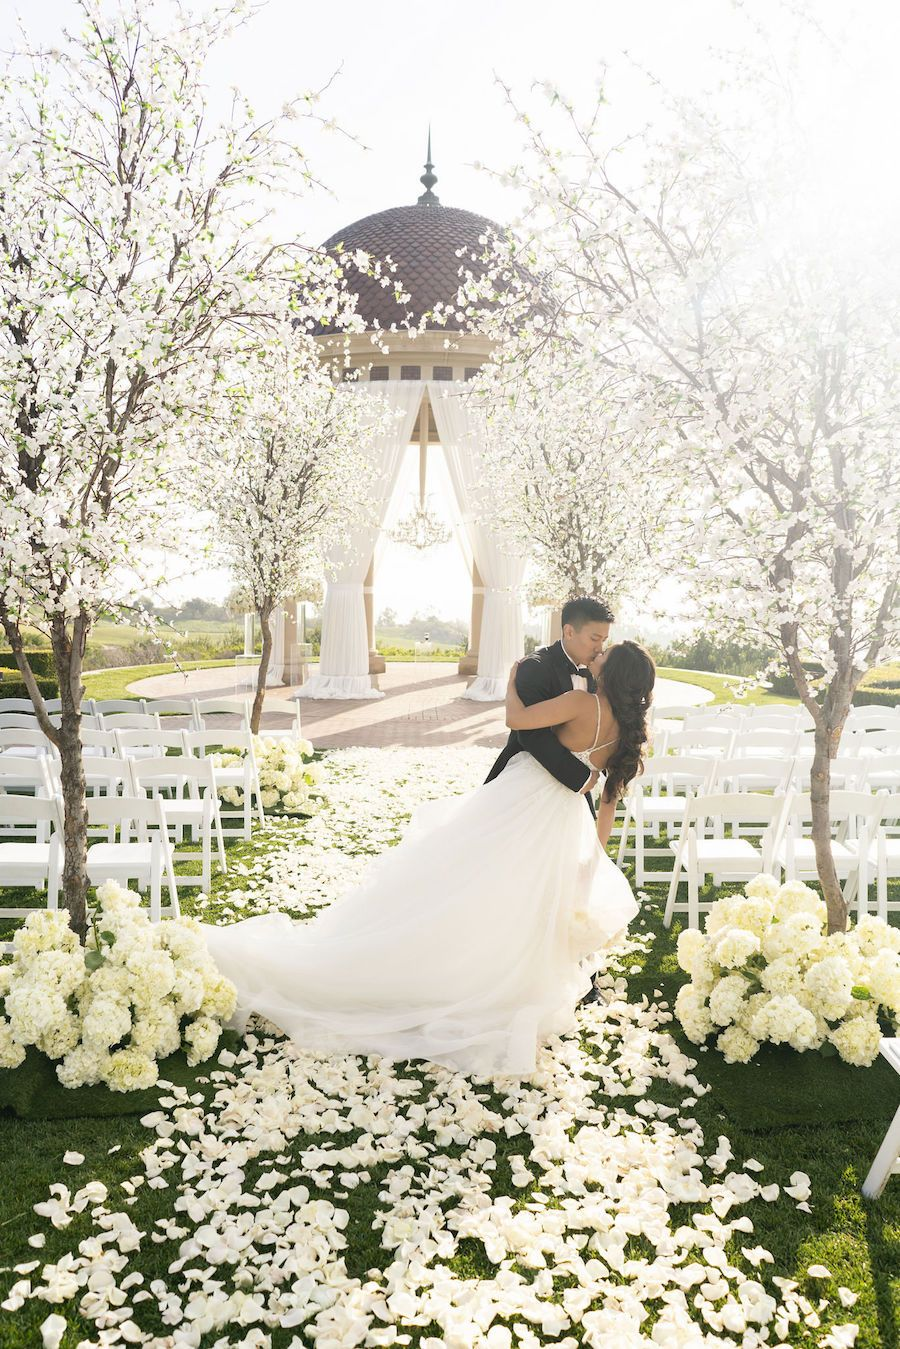 Romantic White Wedding At Pelican Hill With Dreamy Cherry Blossom Trees Modwedding West Virginia Wedding Wedding Tree Wedding